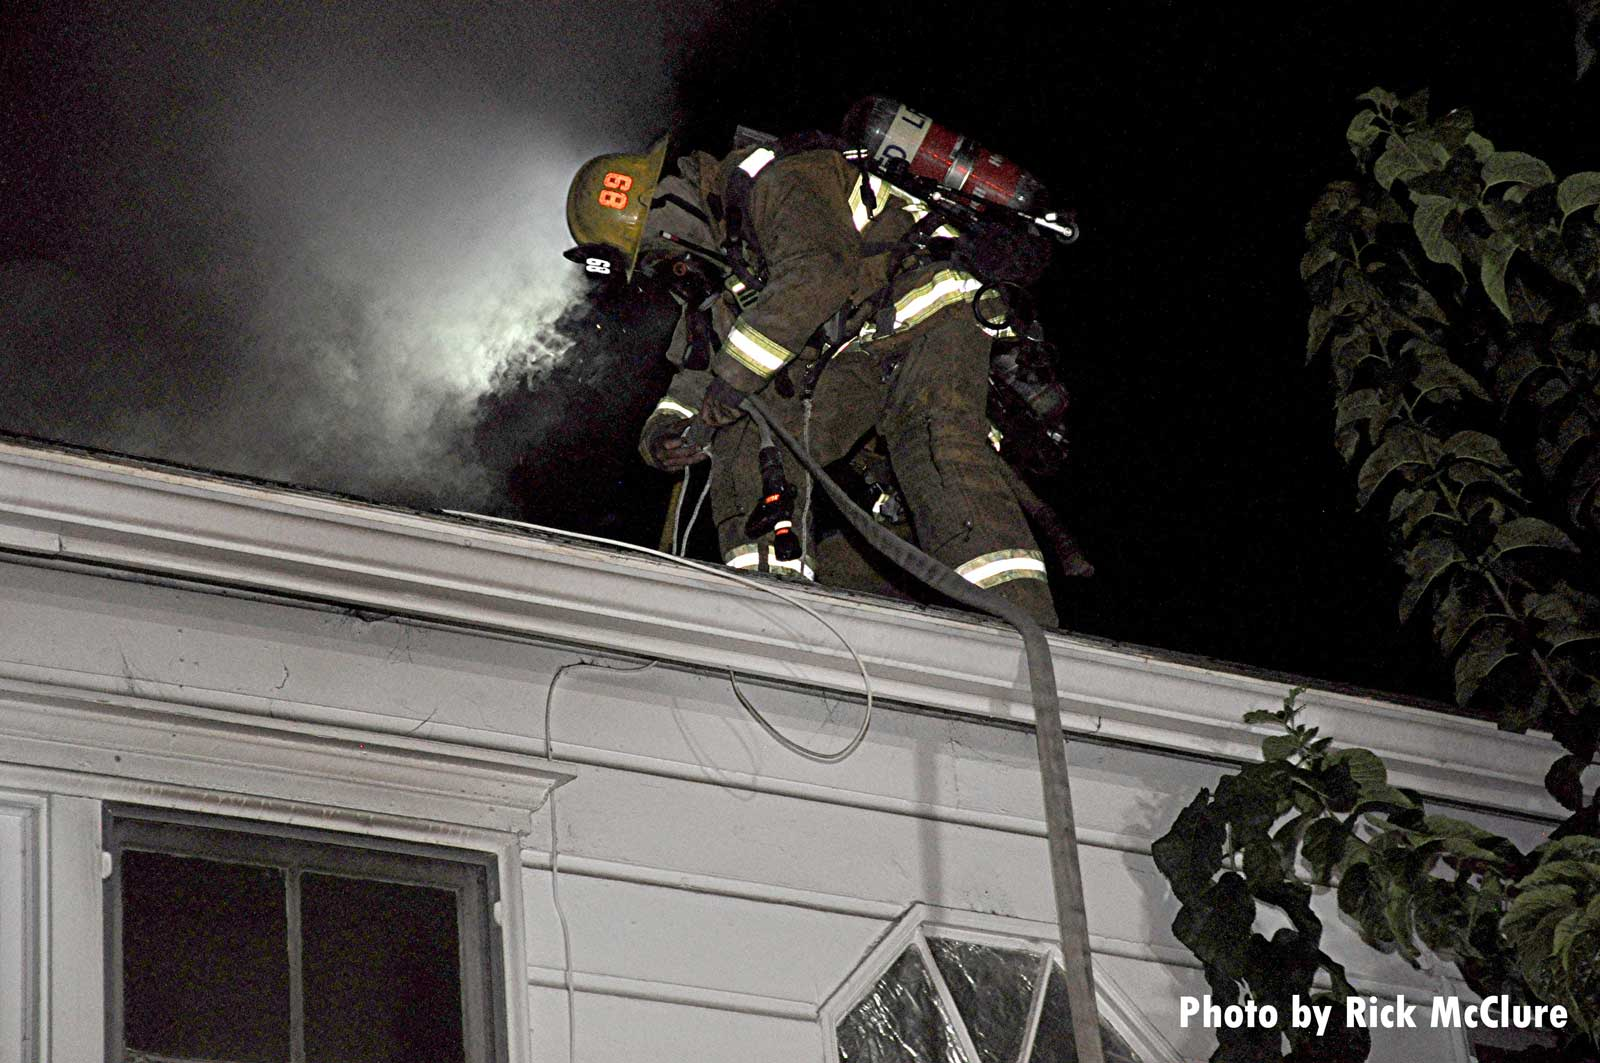 LAFD firefighter on the roof